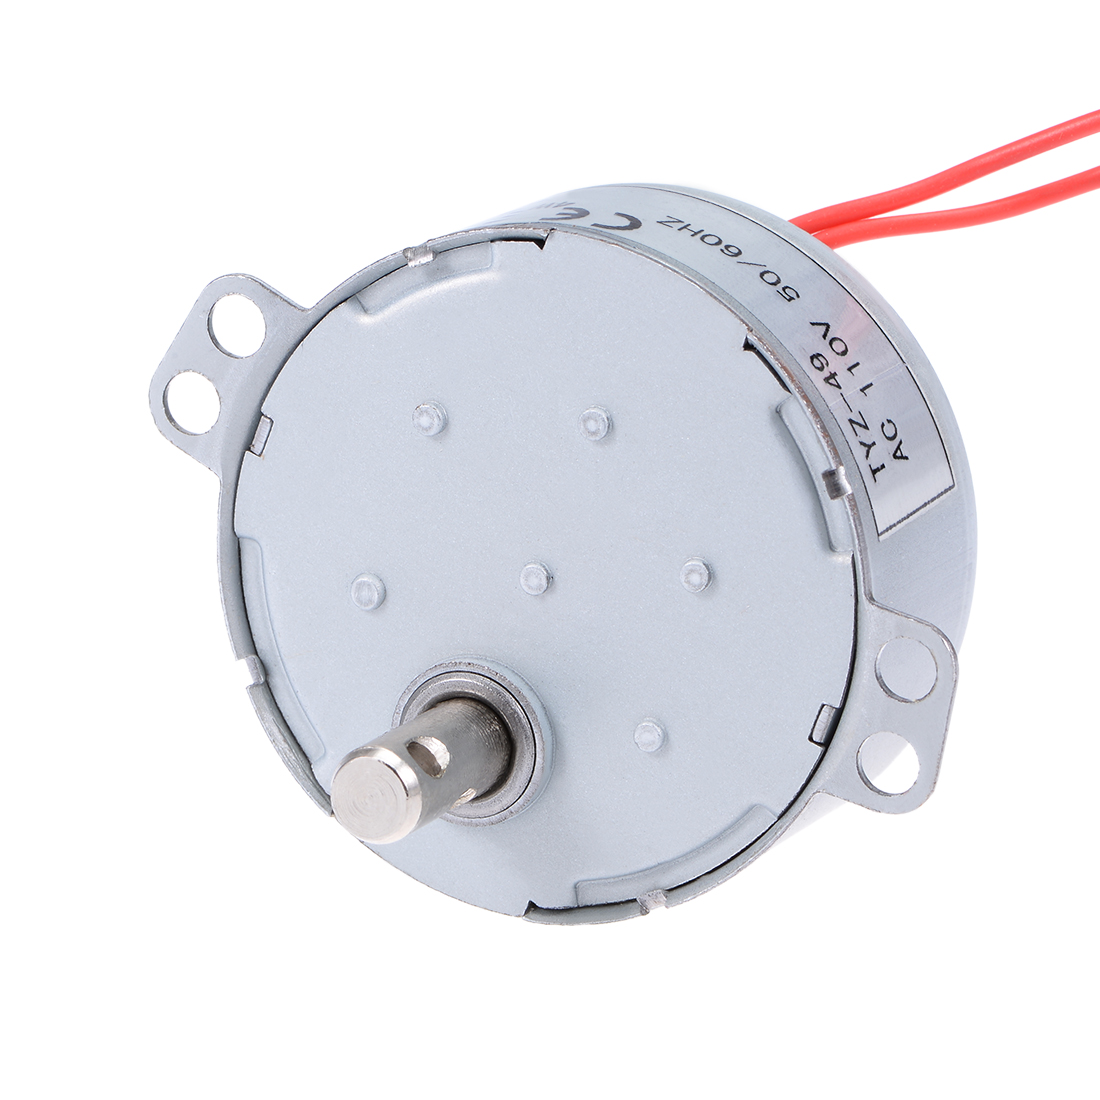 110V 50/60Hz 2.5RPM CCW AC Synchronous Motor Turntable Gear Box for Microwave Oven